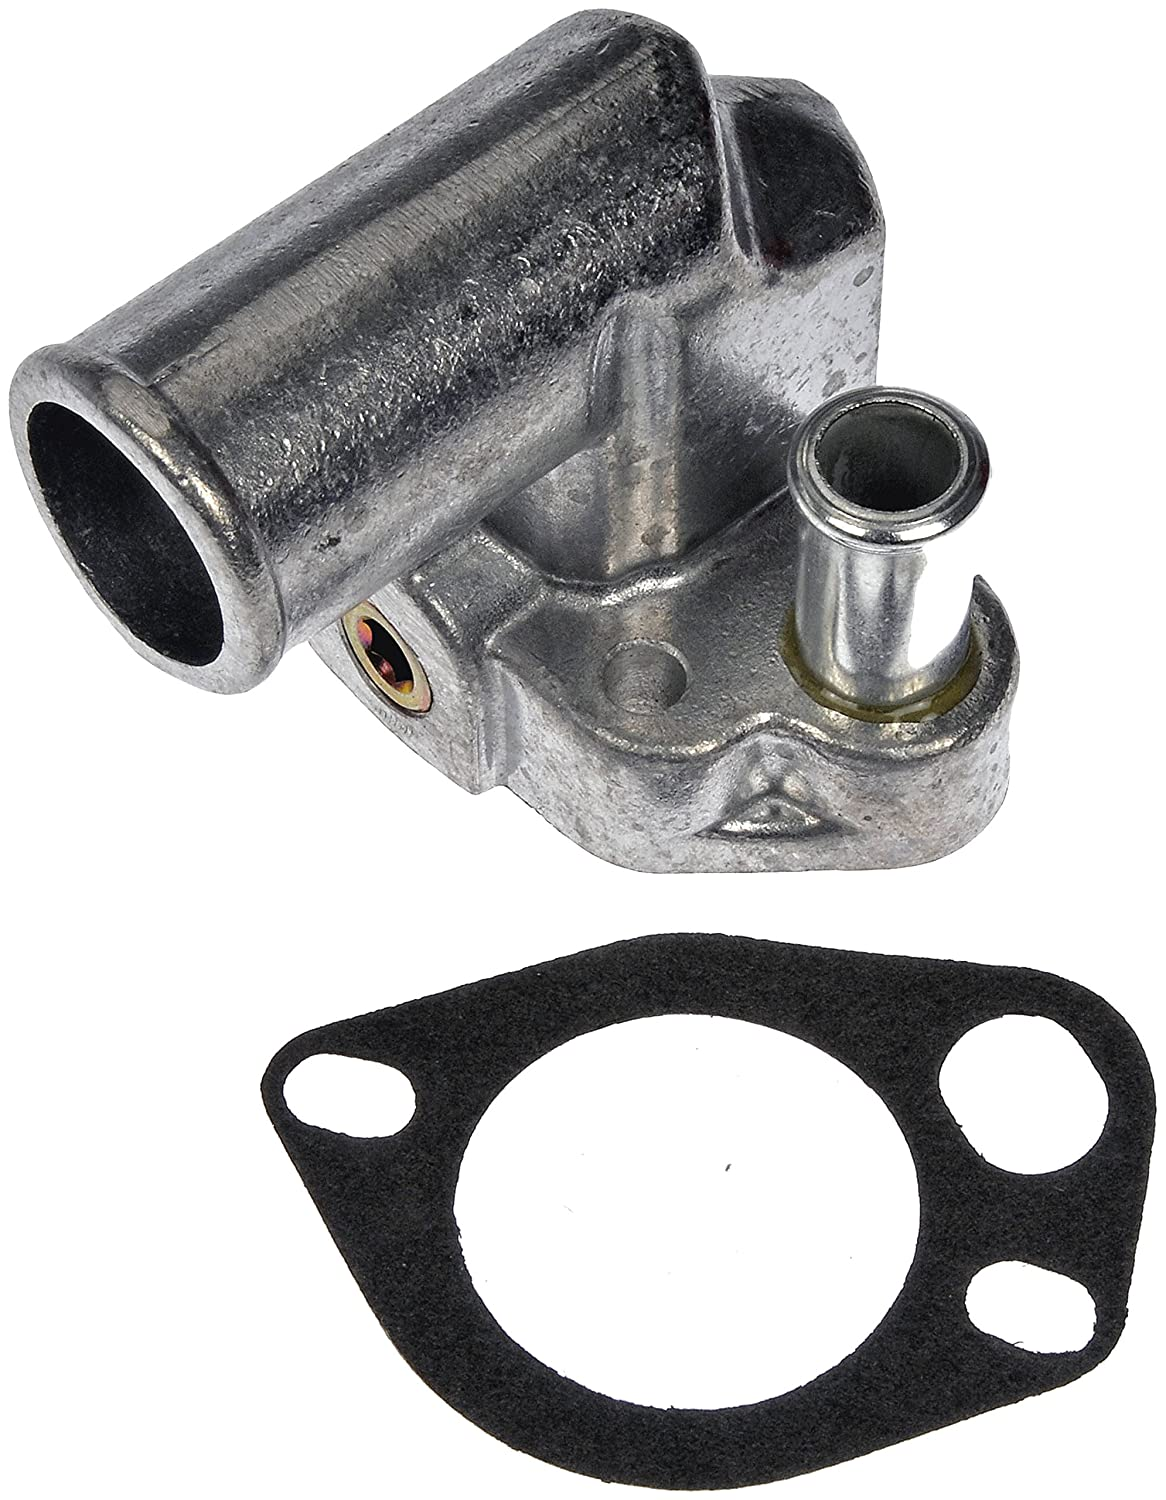 Dorman 902-1003 Engine Coolant Thermostat Housing Dorman OE Solutions